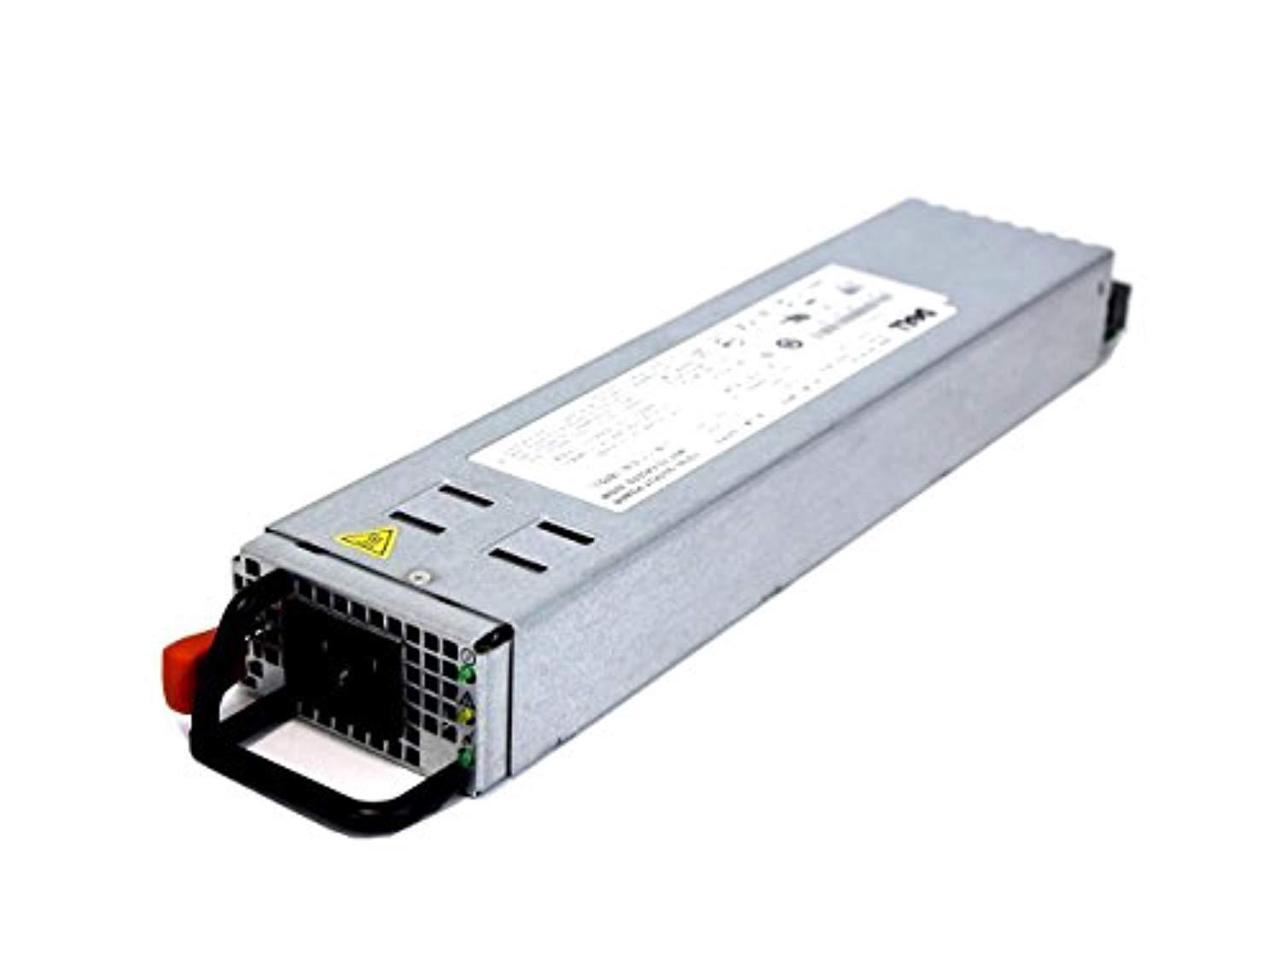 670 Watt Hot-plug Redundant Power Supply Unit for PowerEdge 1950 and PowerVault NX1950 Systems Dell P//N P424D